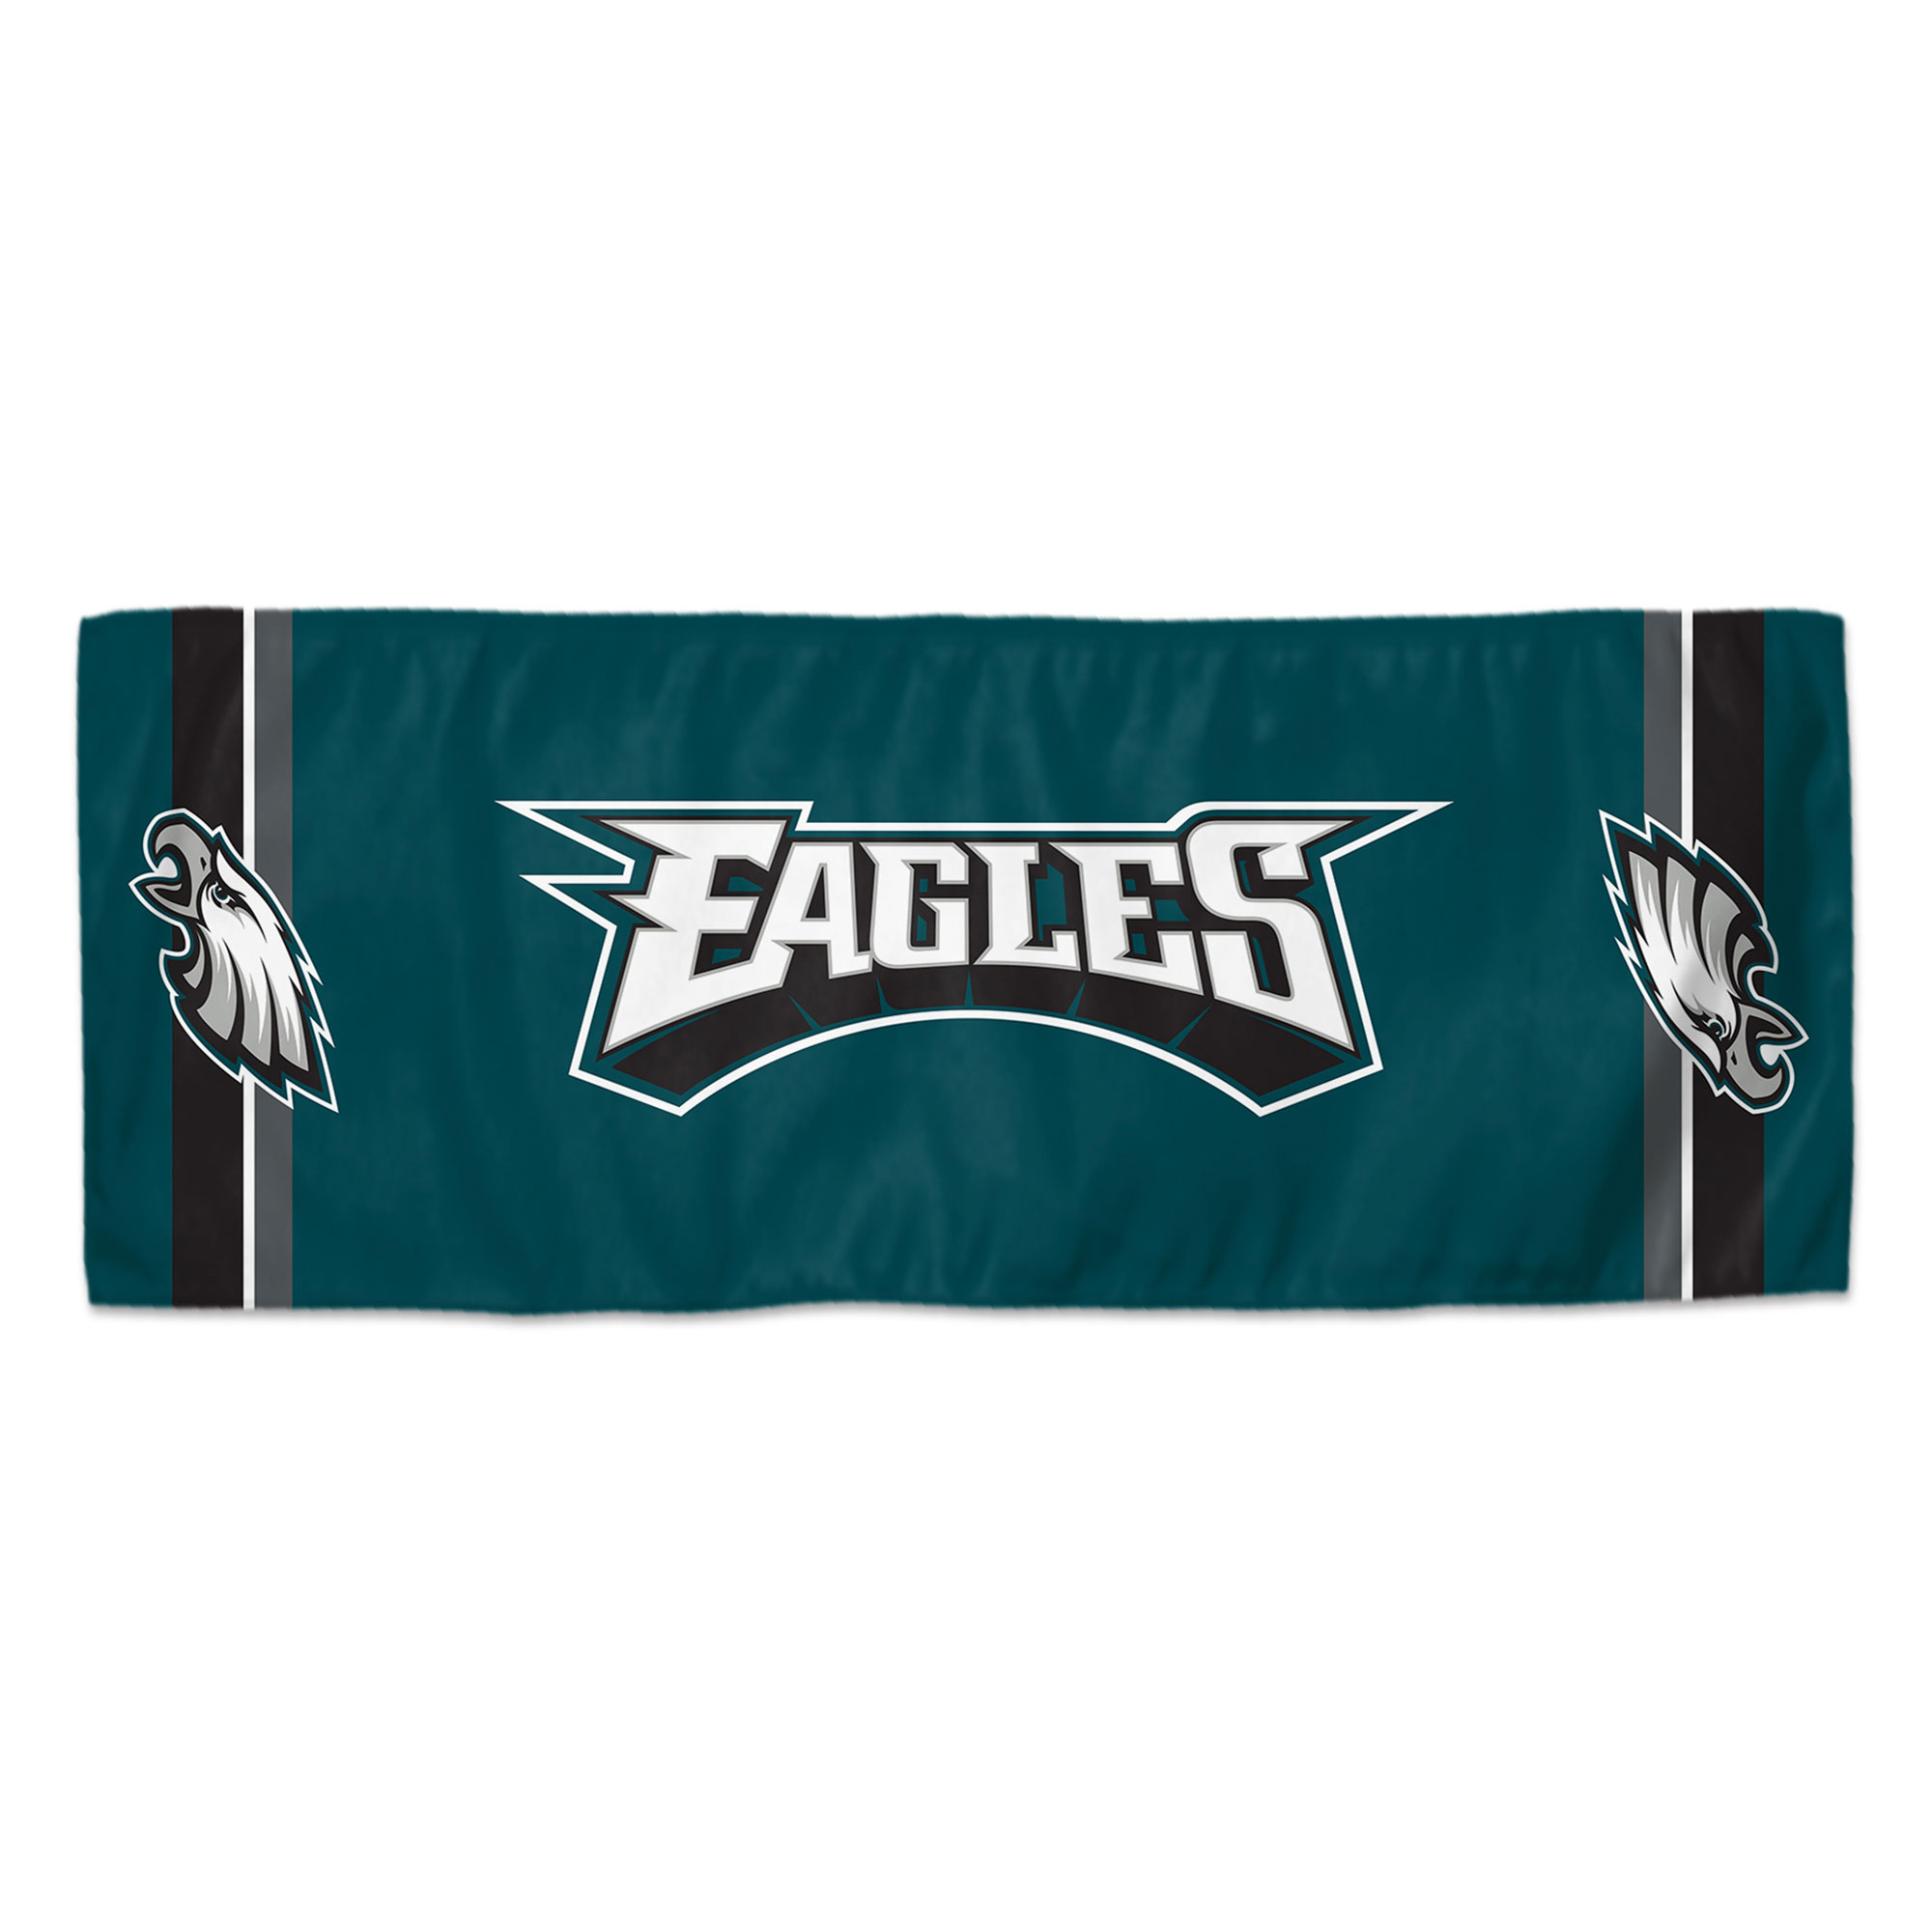 "Philadelphia Eagles WinCraft 12"" x 30"" Double-Sided Cooling Towel - No Size"